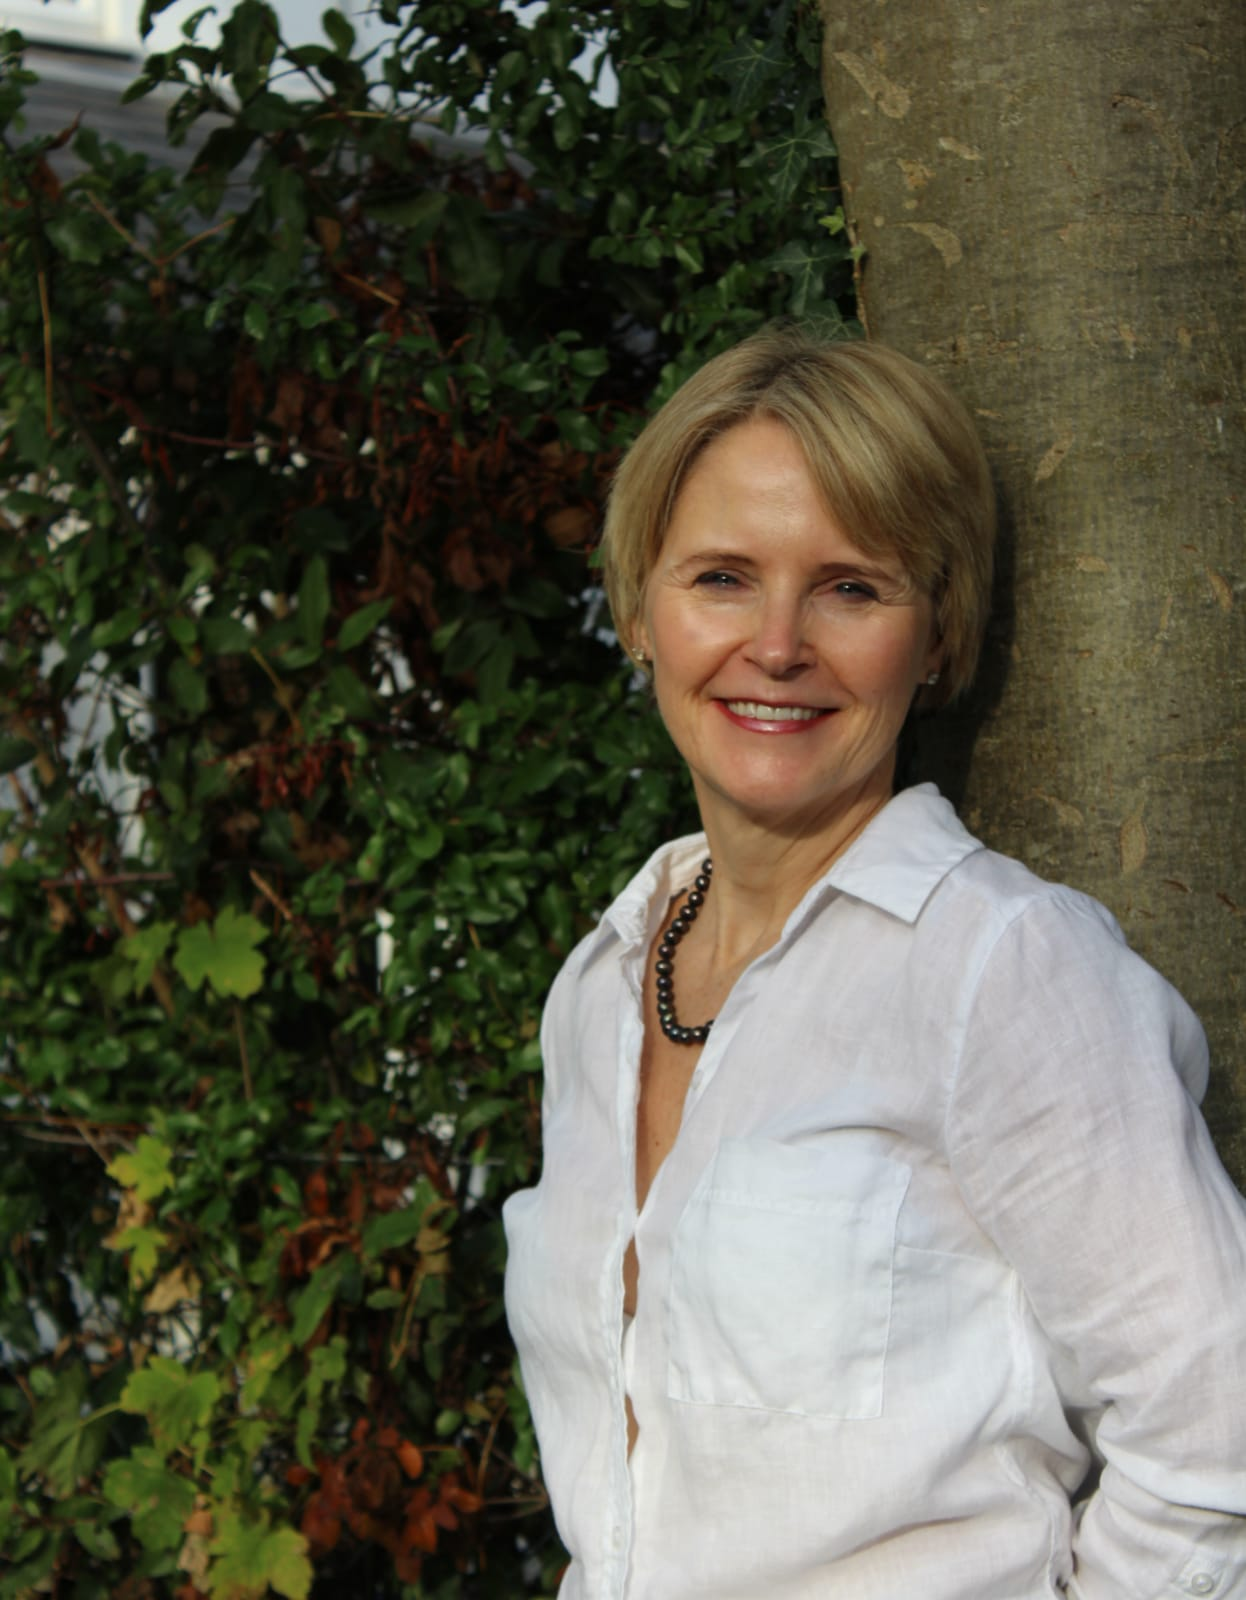 Ep 114: Embracing change with Lorraine the healer